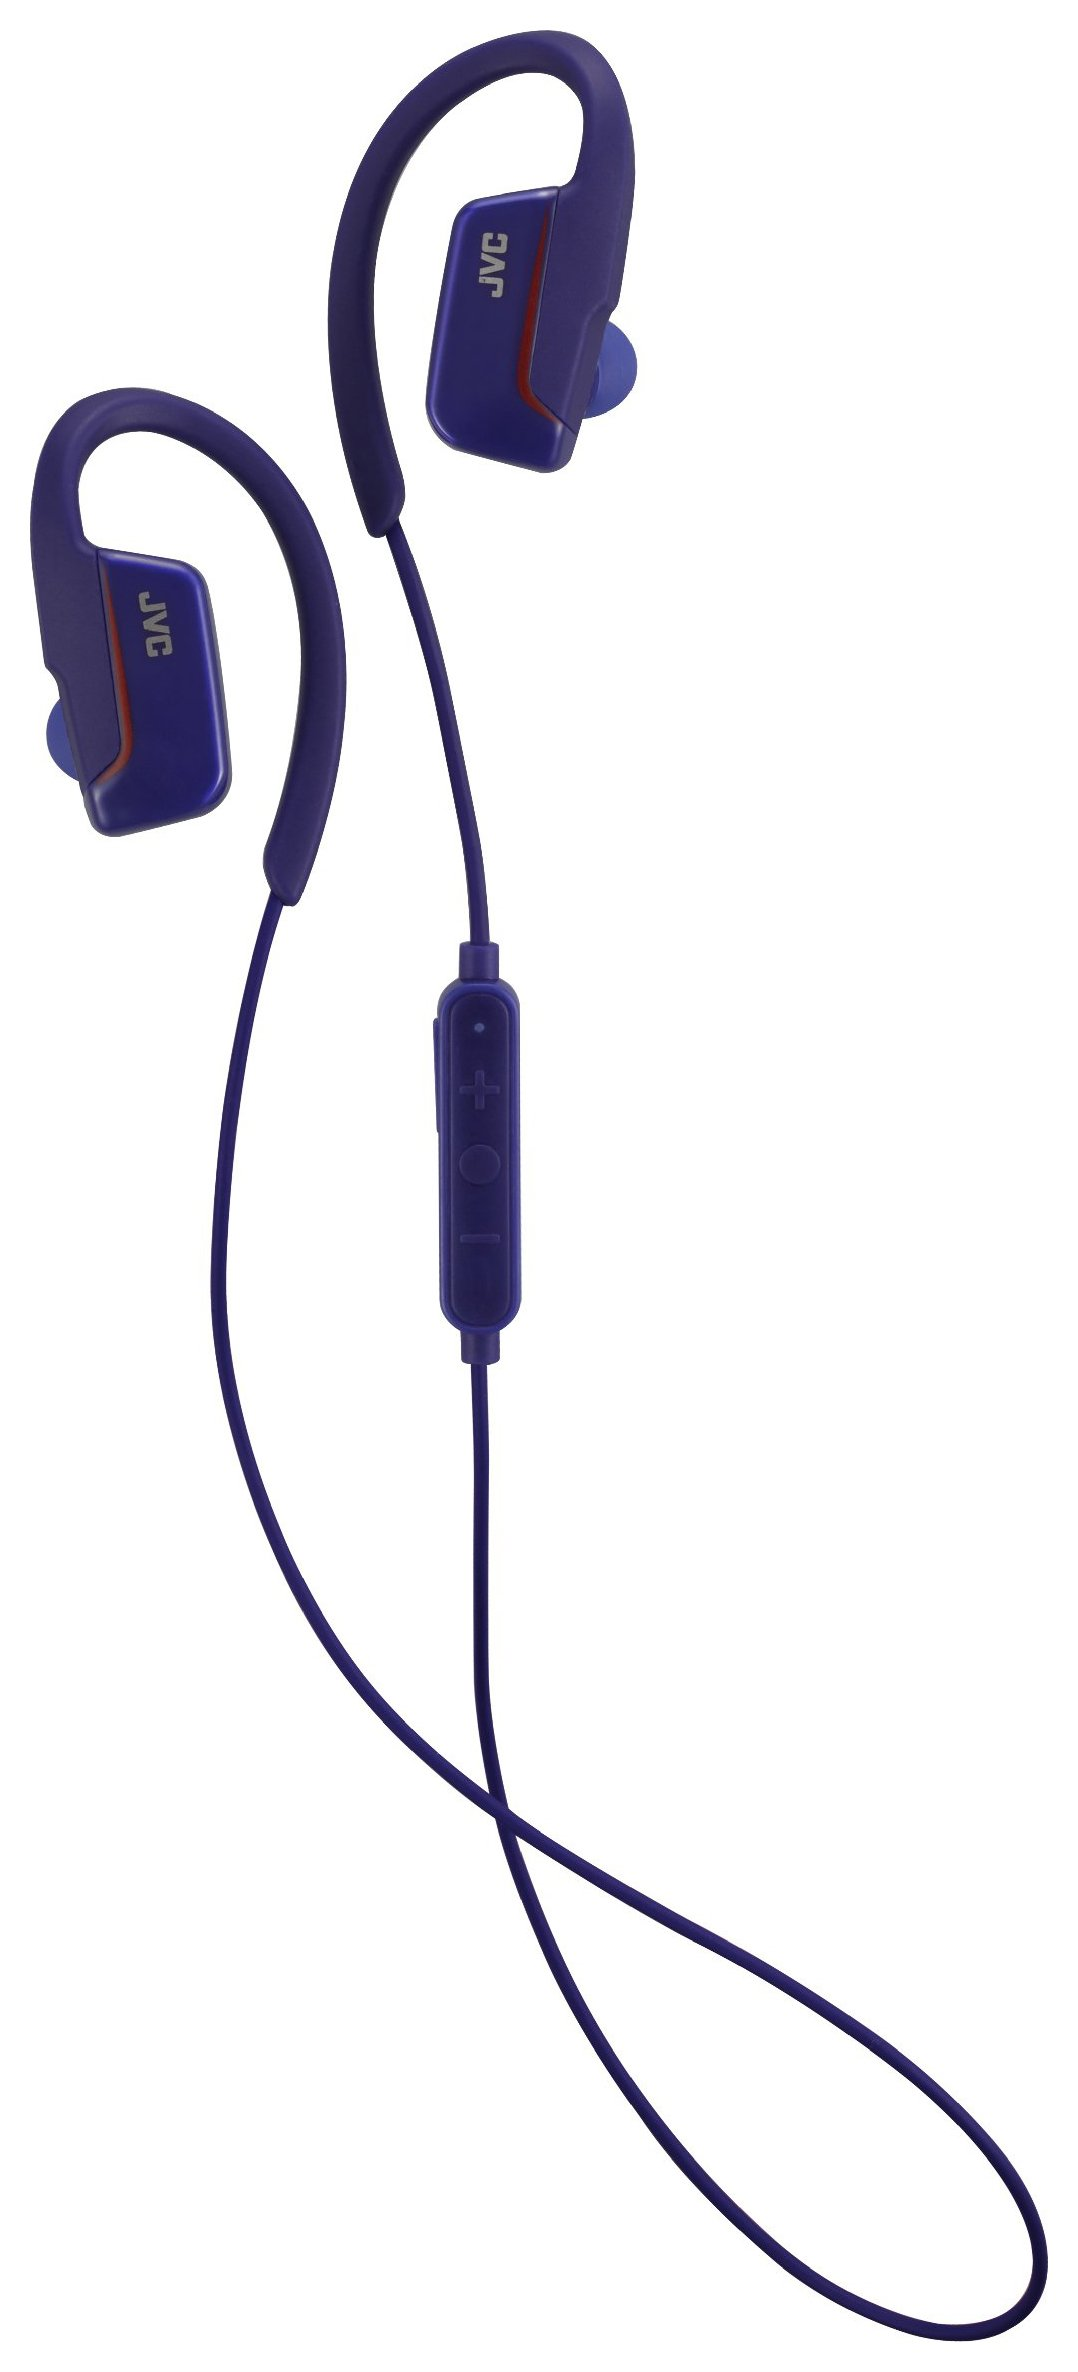 JVC HA-EC30BT In-Ear Wireless Sports Headphones - Blue.